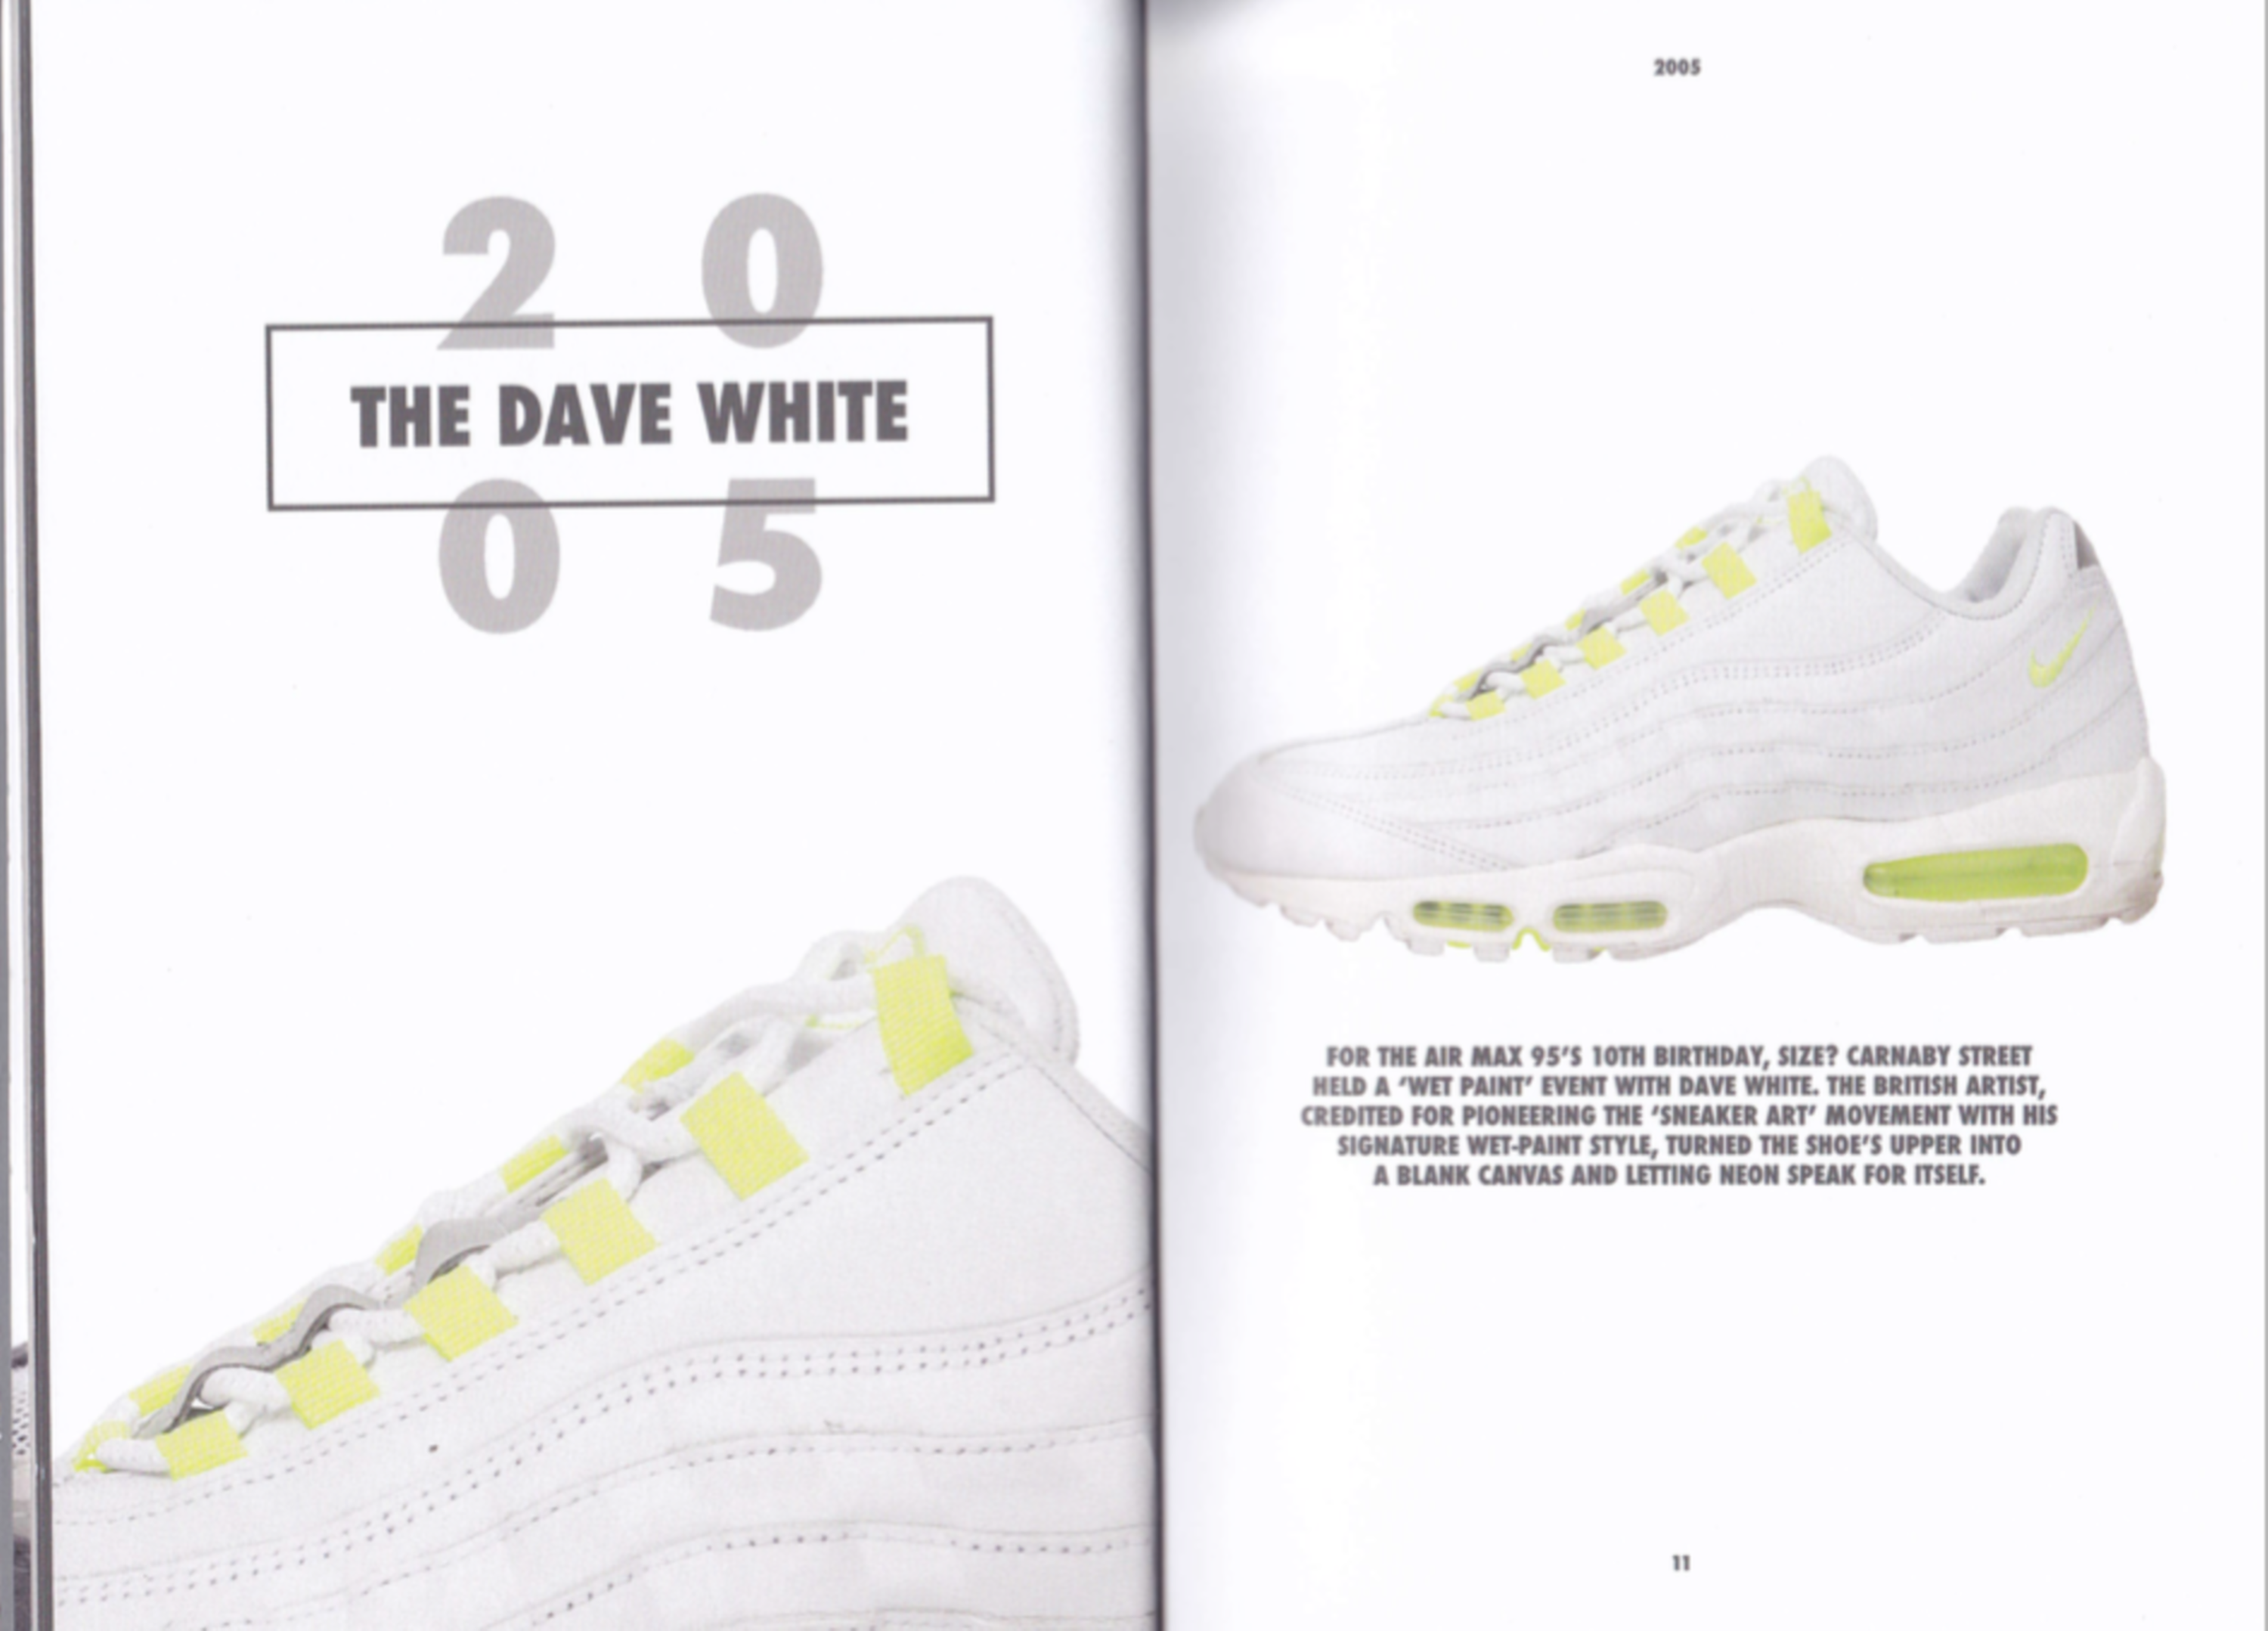 Nike — \'The Anatomy of Air\' Exhibition and Book   The Dots